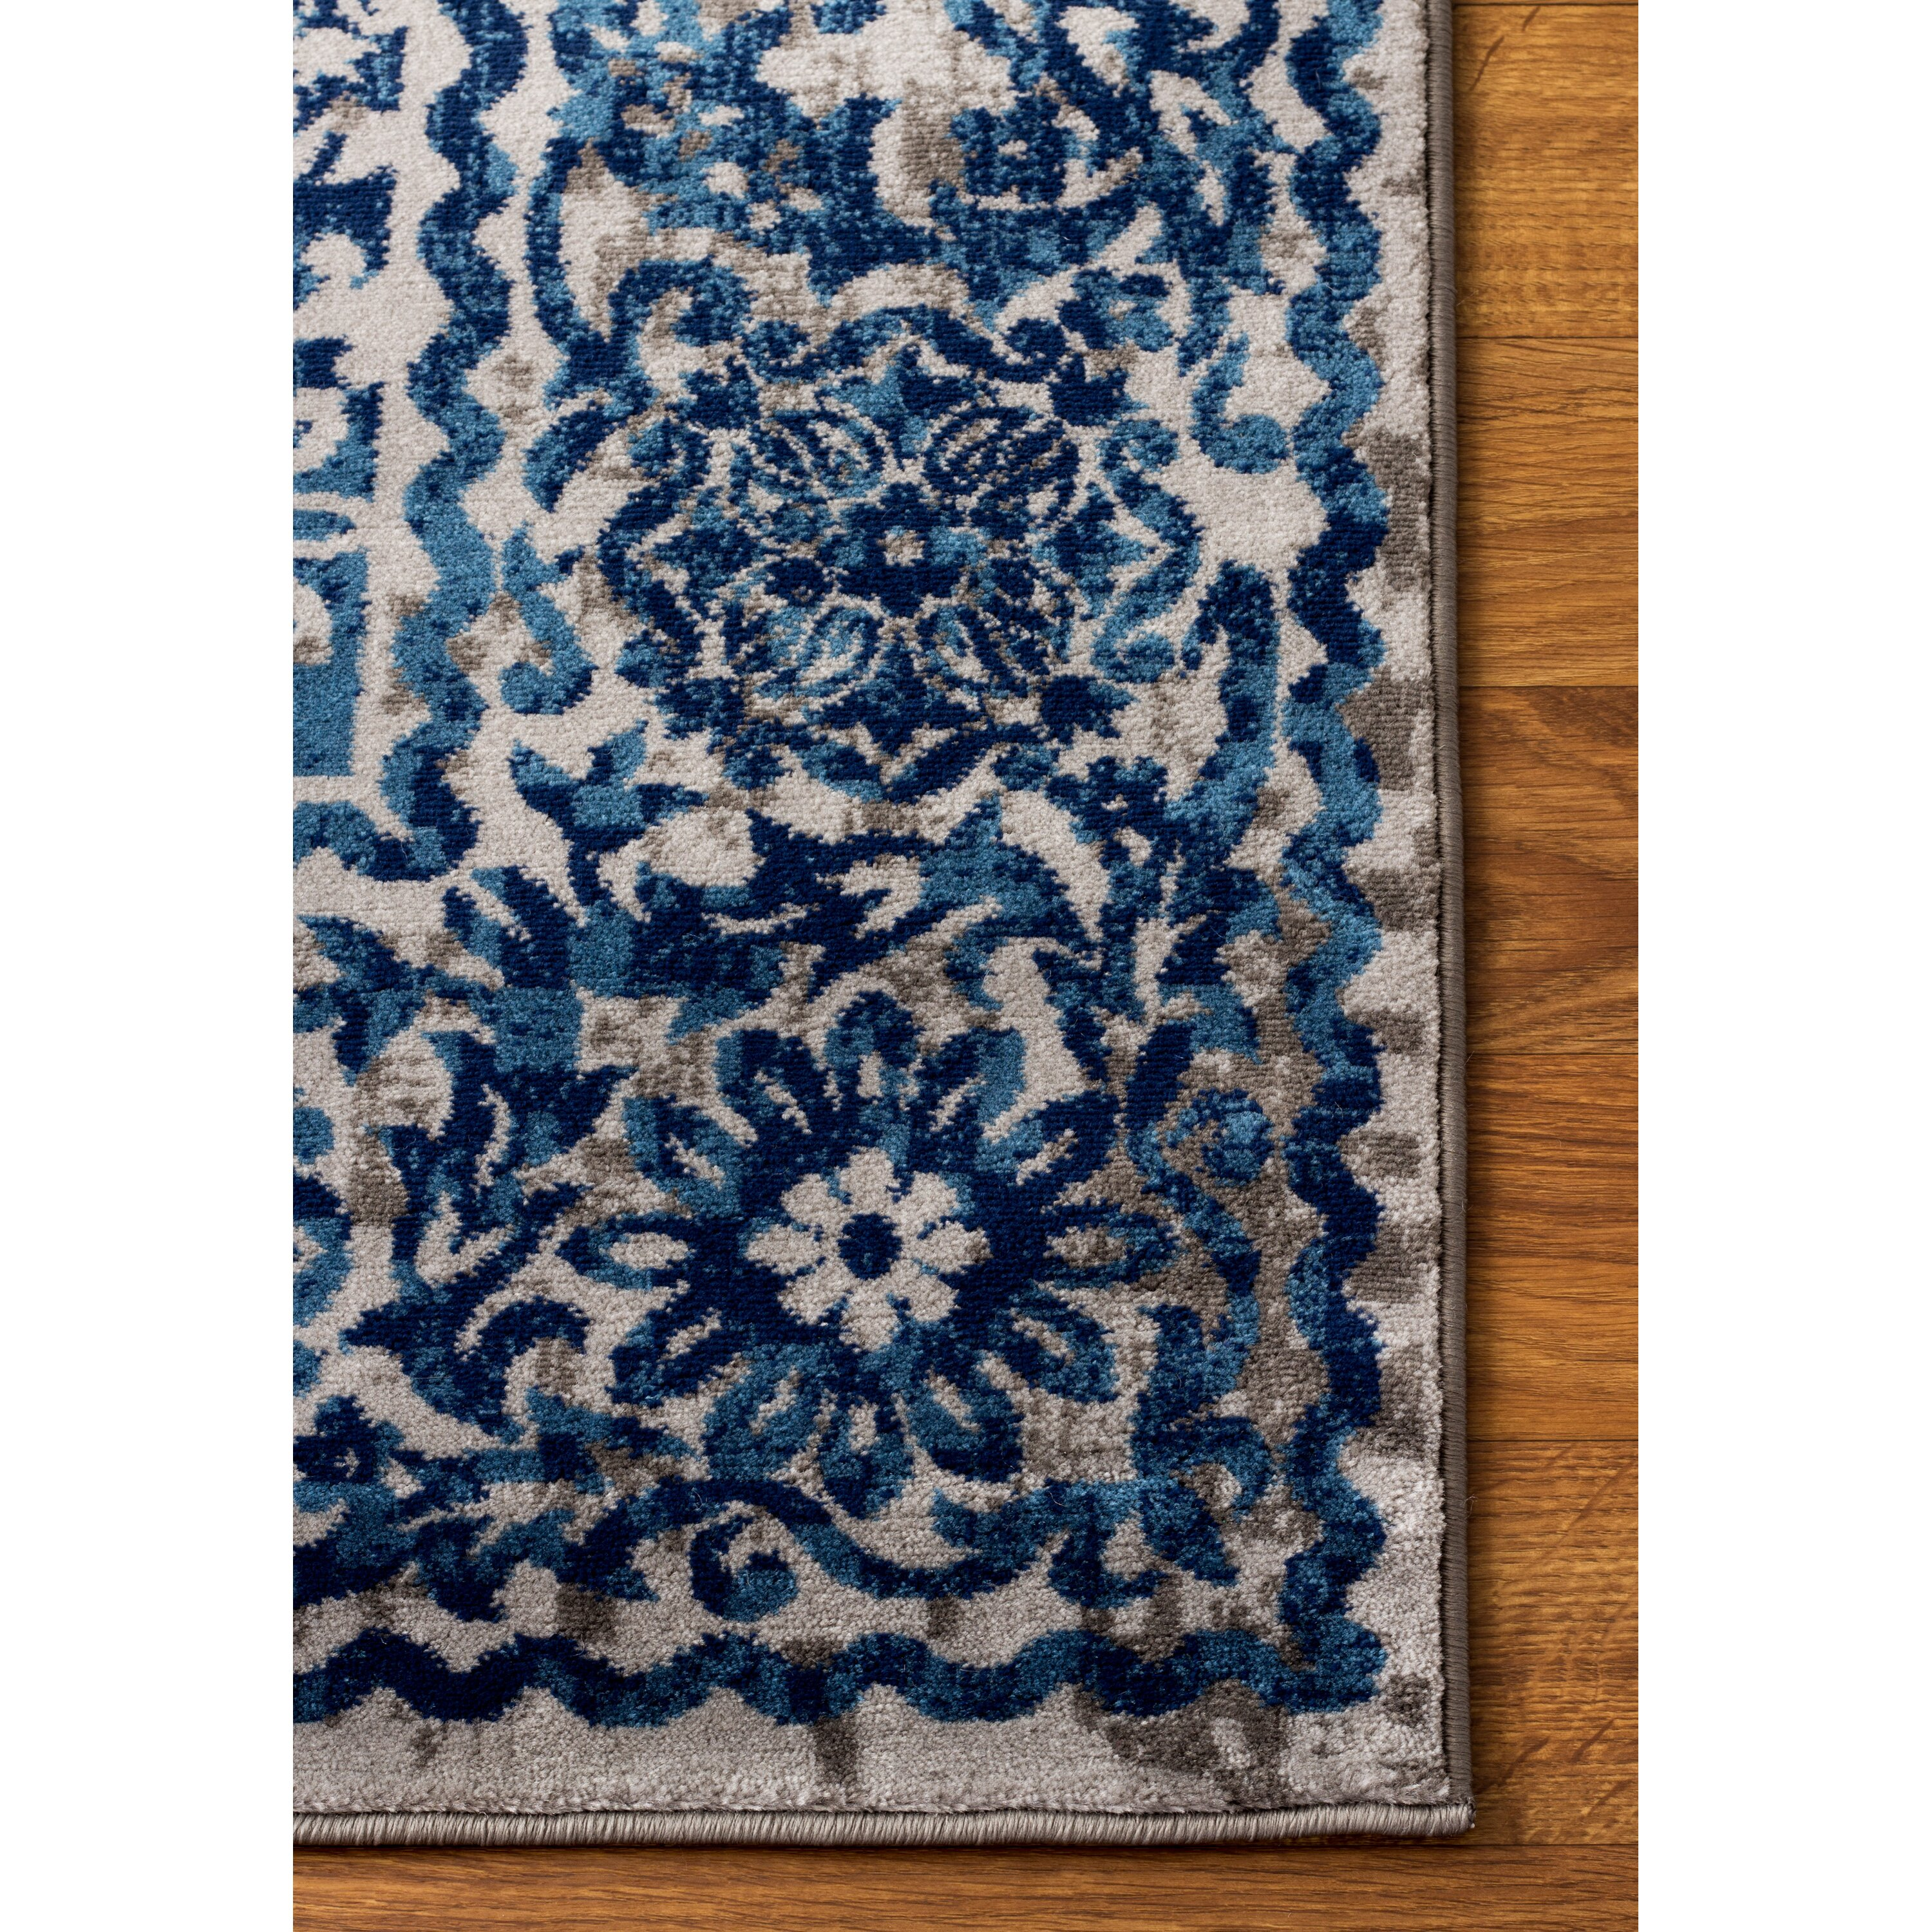 Super Area Rugs Artifact Gray Blue Area Rug Wayfair